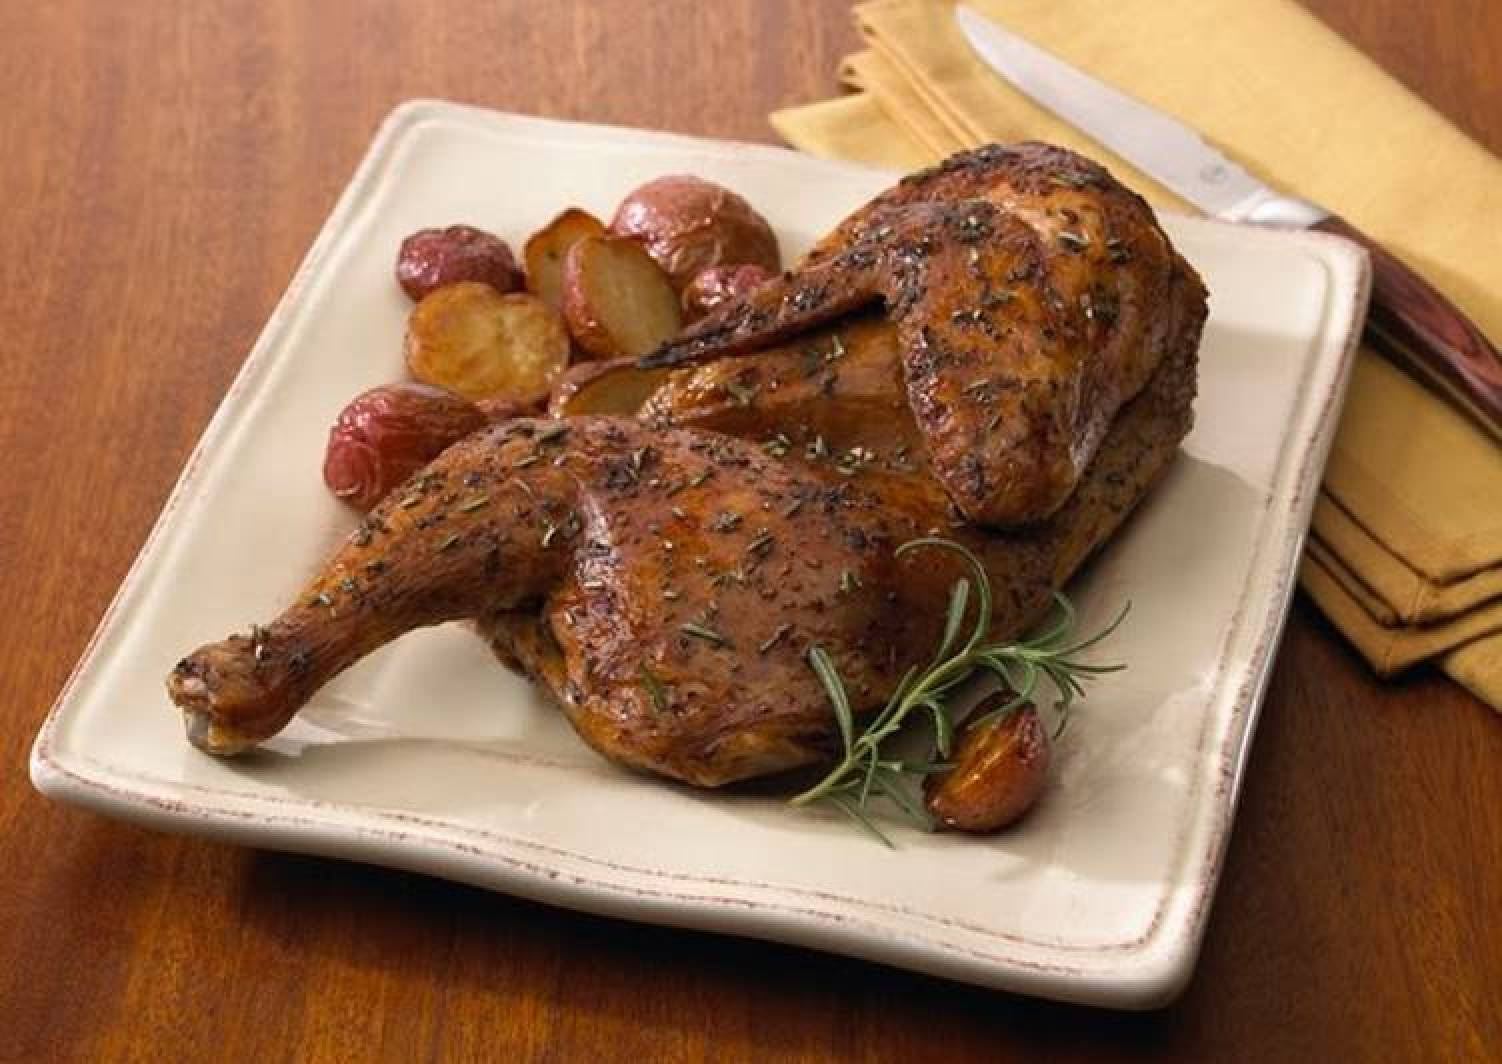 Roasted Half Chicken with Chickpea and Gigande Hoppin' John